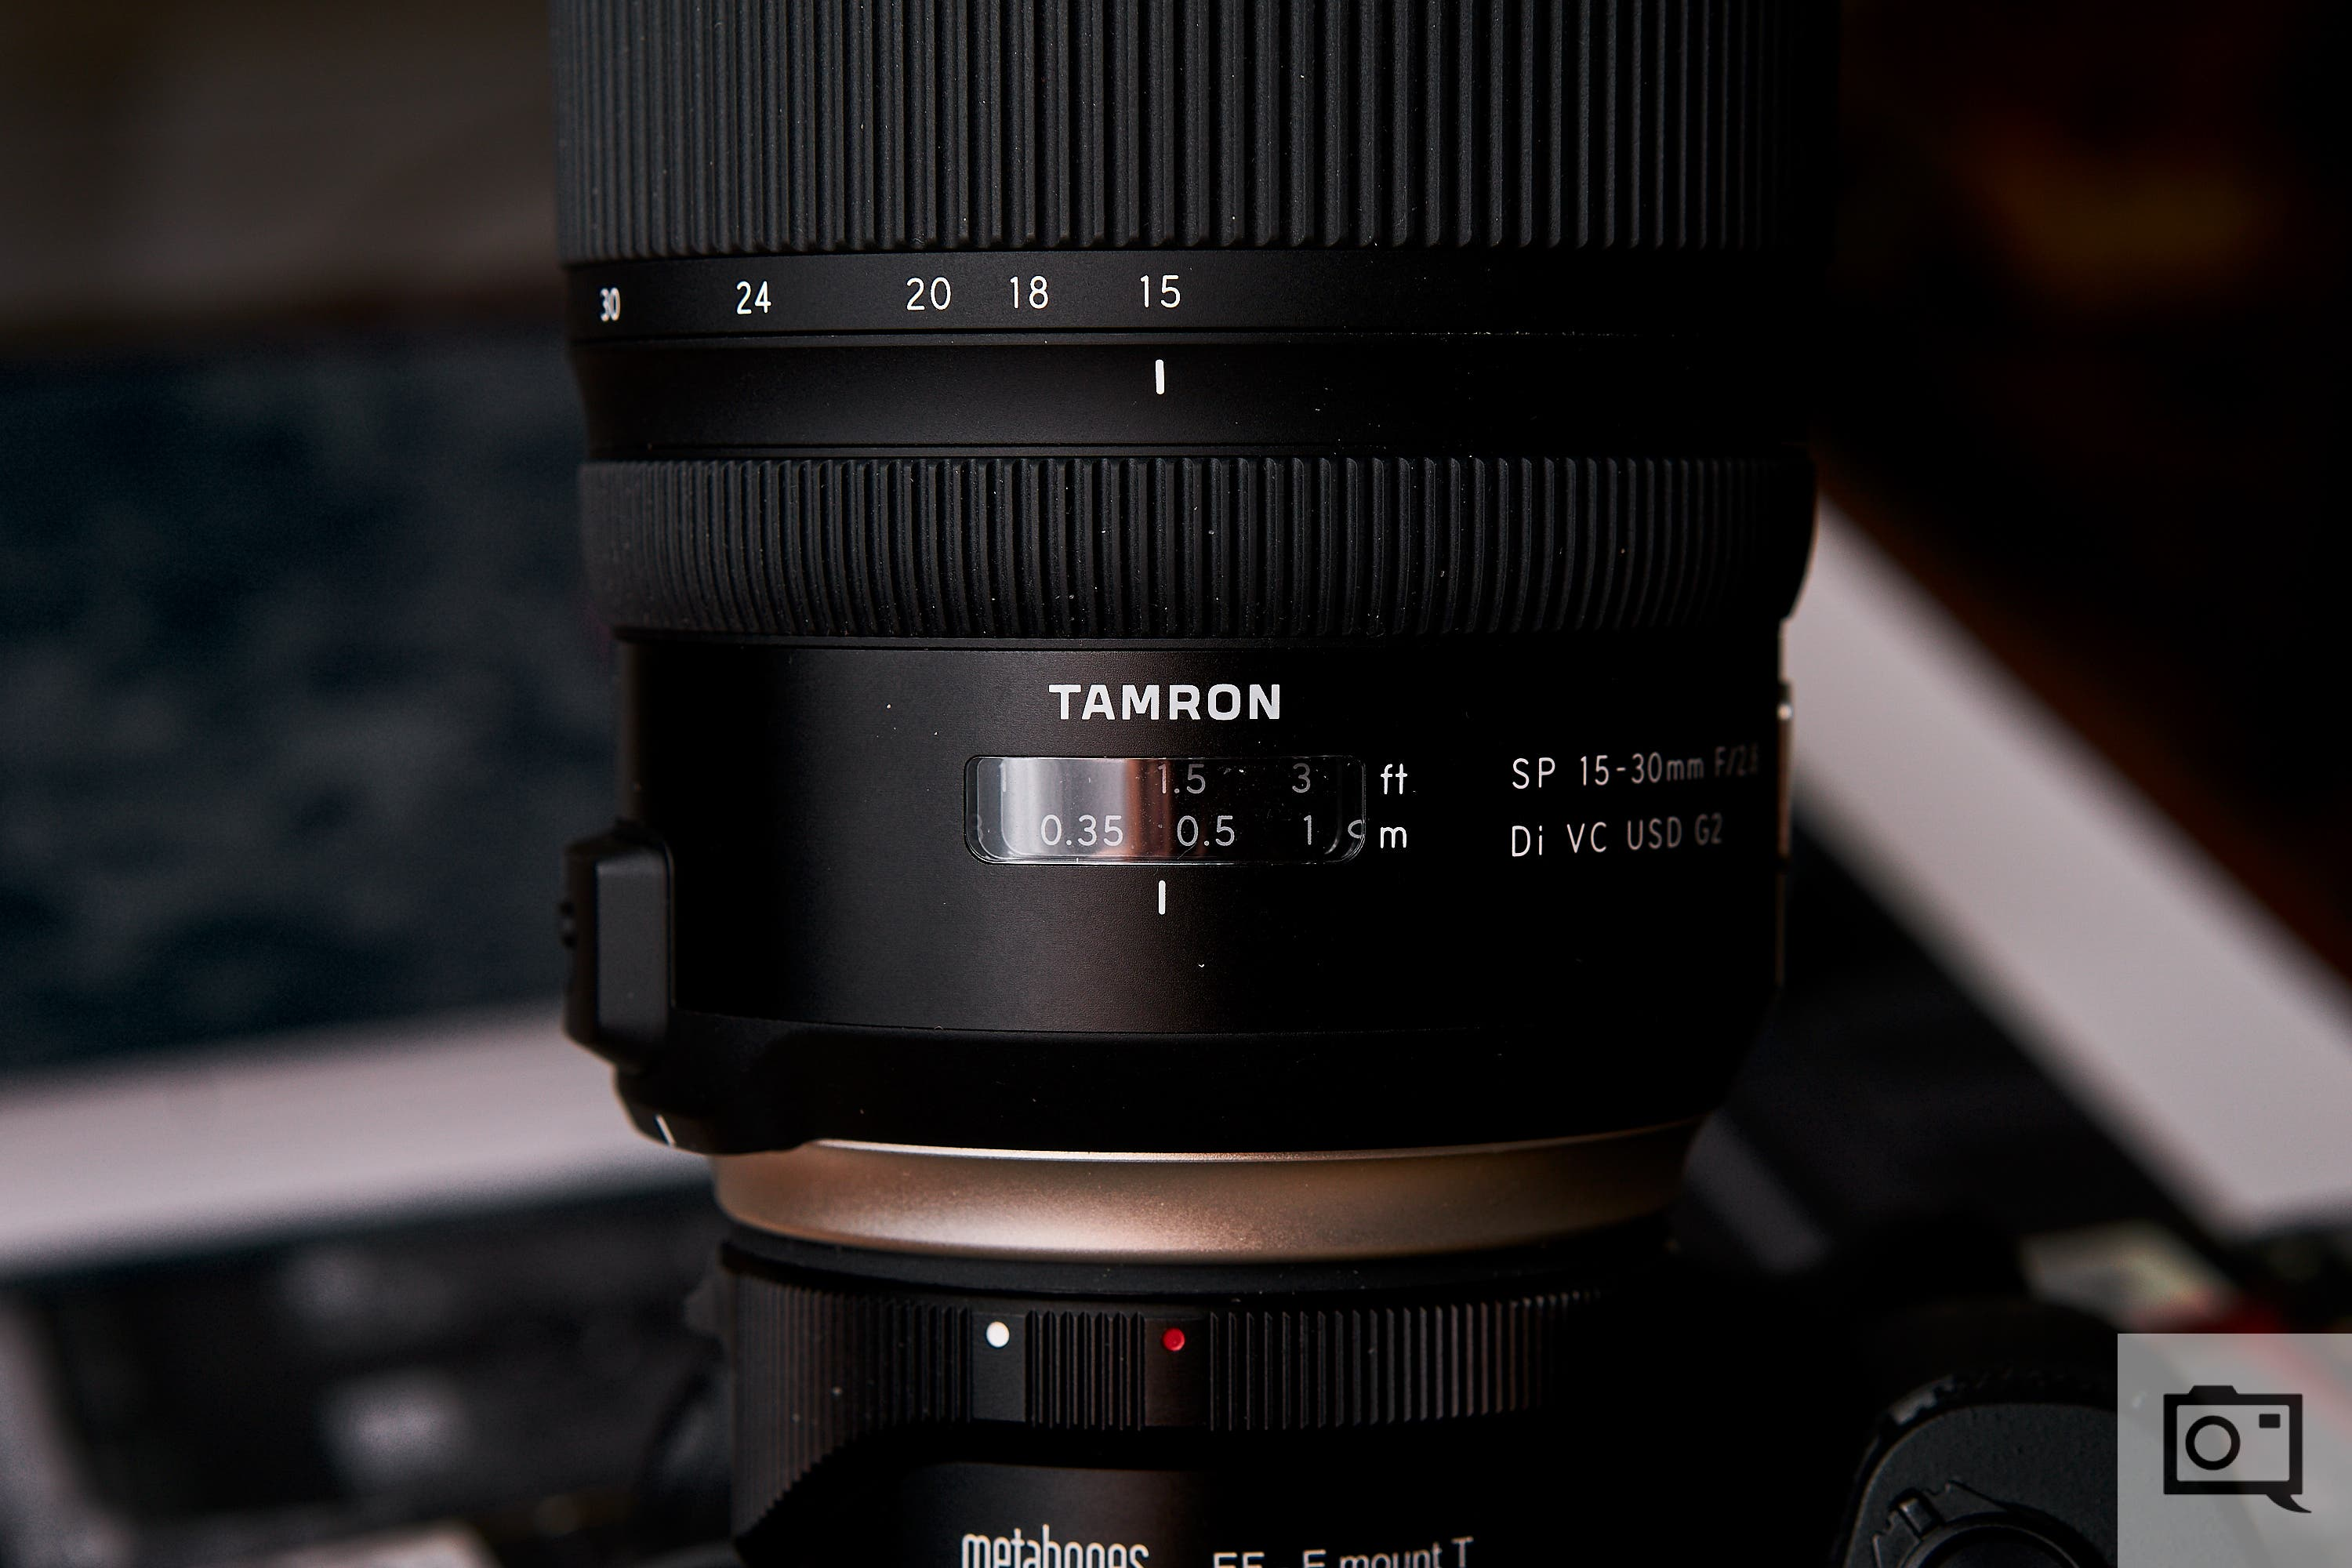 Save up to $200 on Tamron Lenses During Their Fall Savings Event